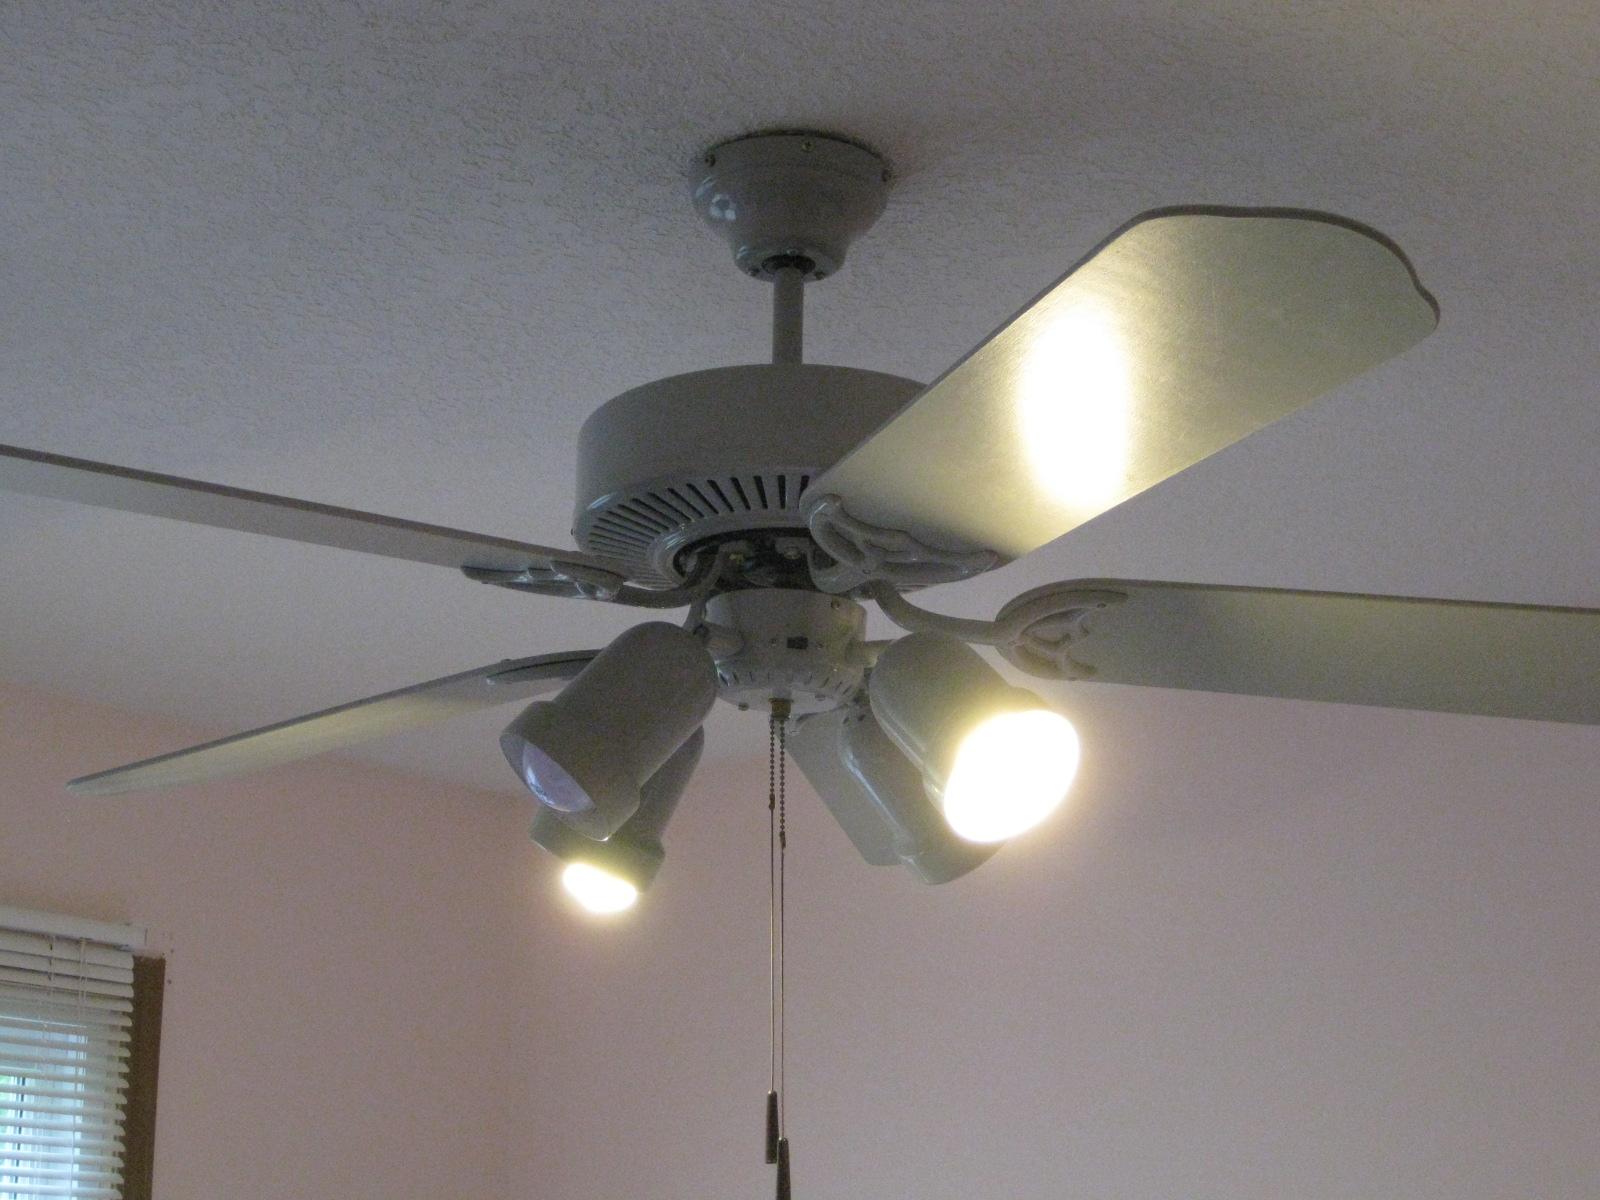 Henrietta 39 s house building more character with lighting for Bedroom ceiling fans